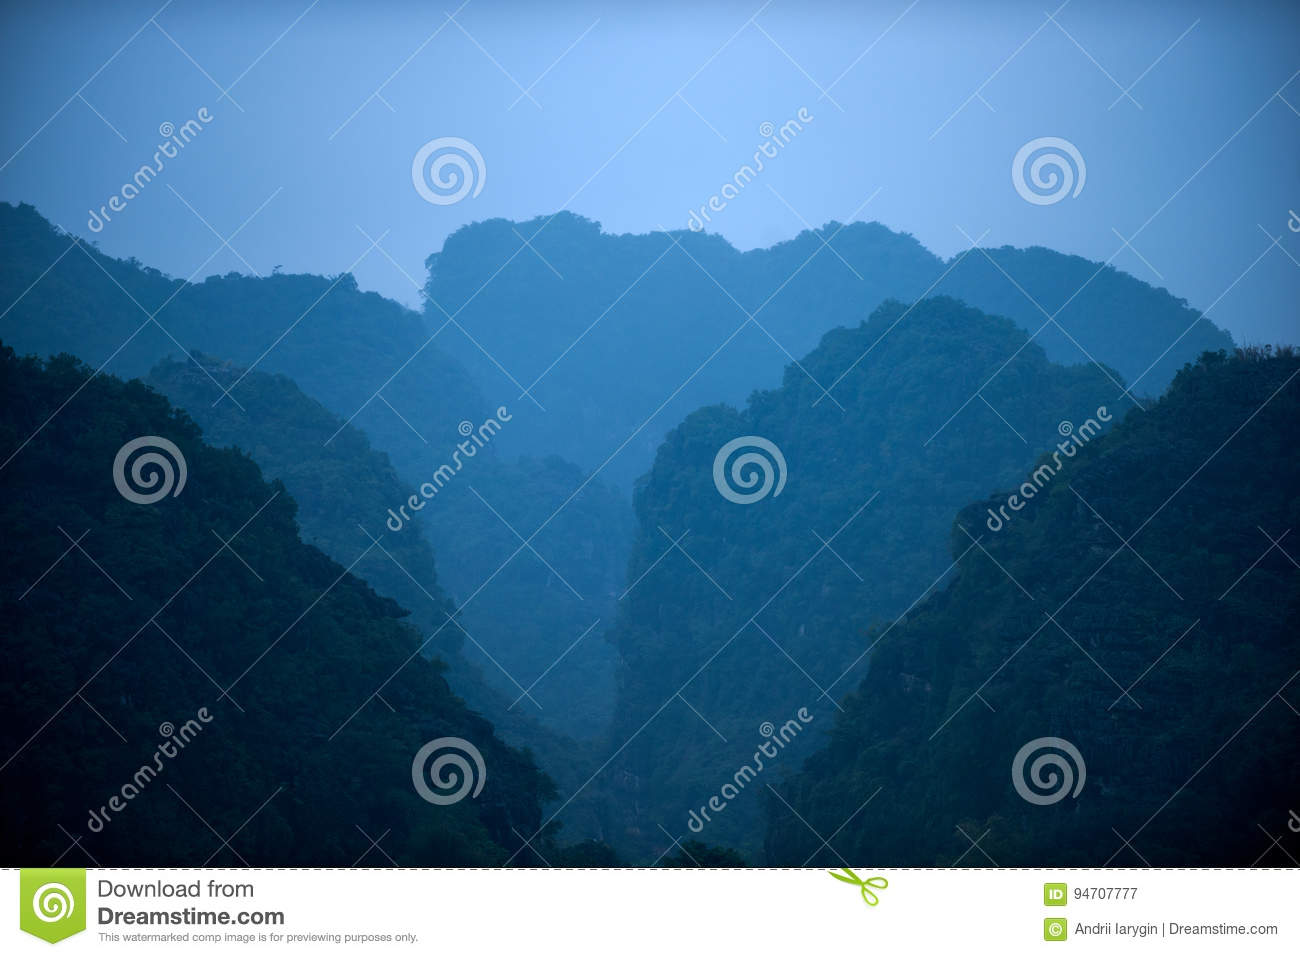 Landscape silhouette of mountains in asia